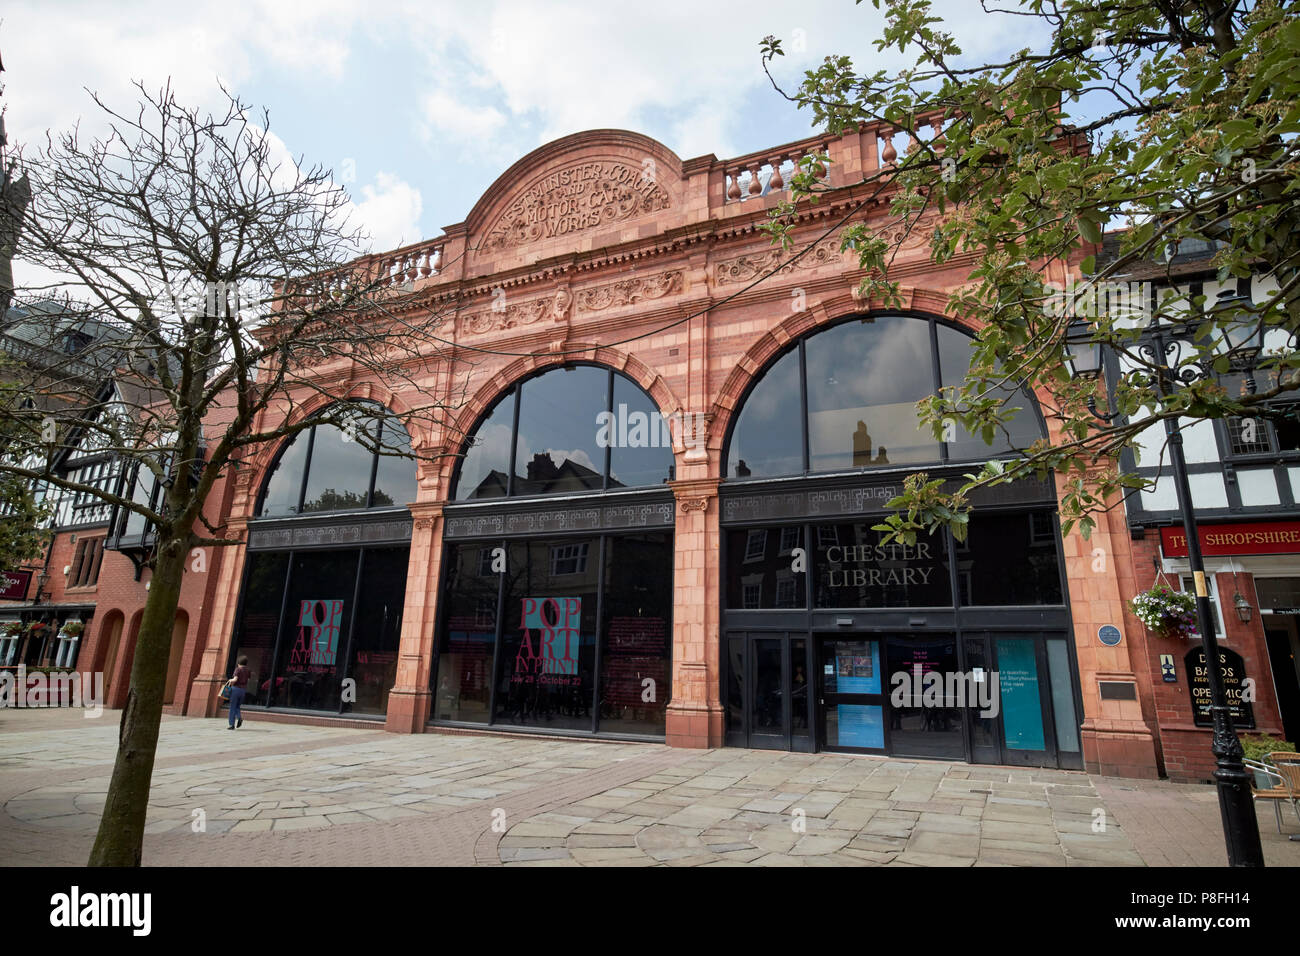 former Chester library in the old westminster coach and motor car works building in chester cheshire england uk - Stock Image